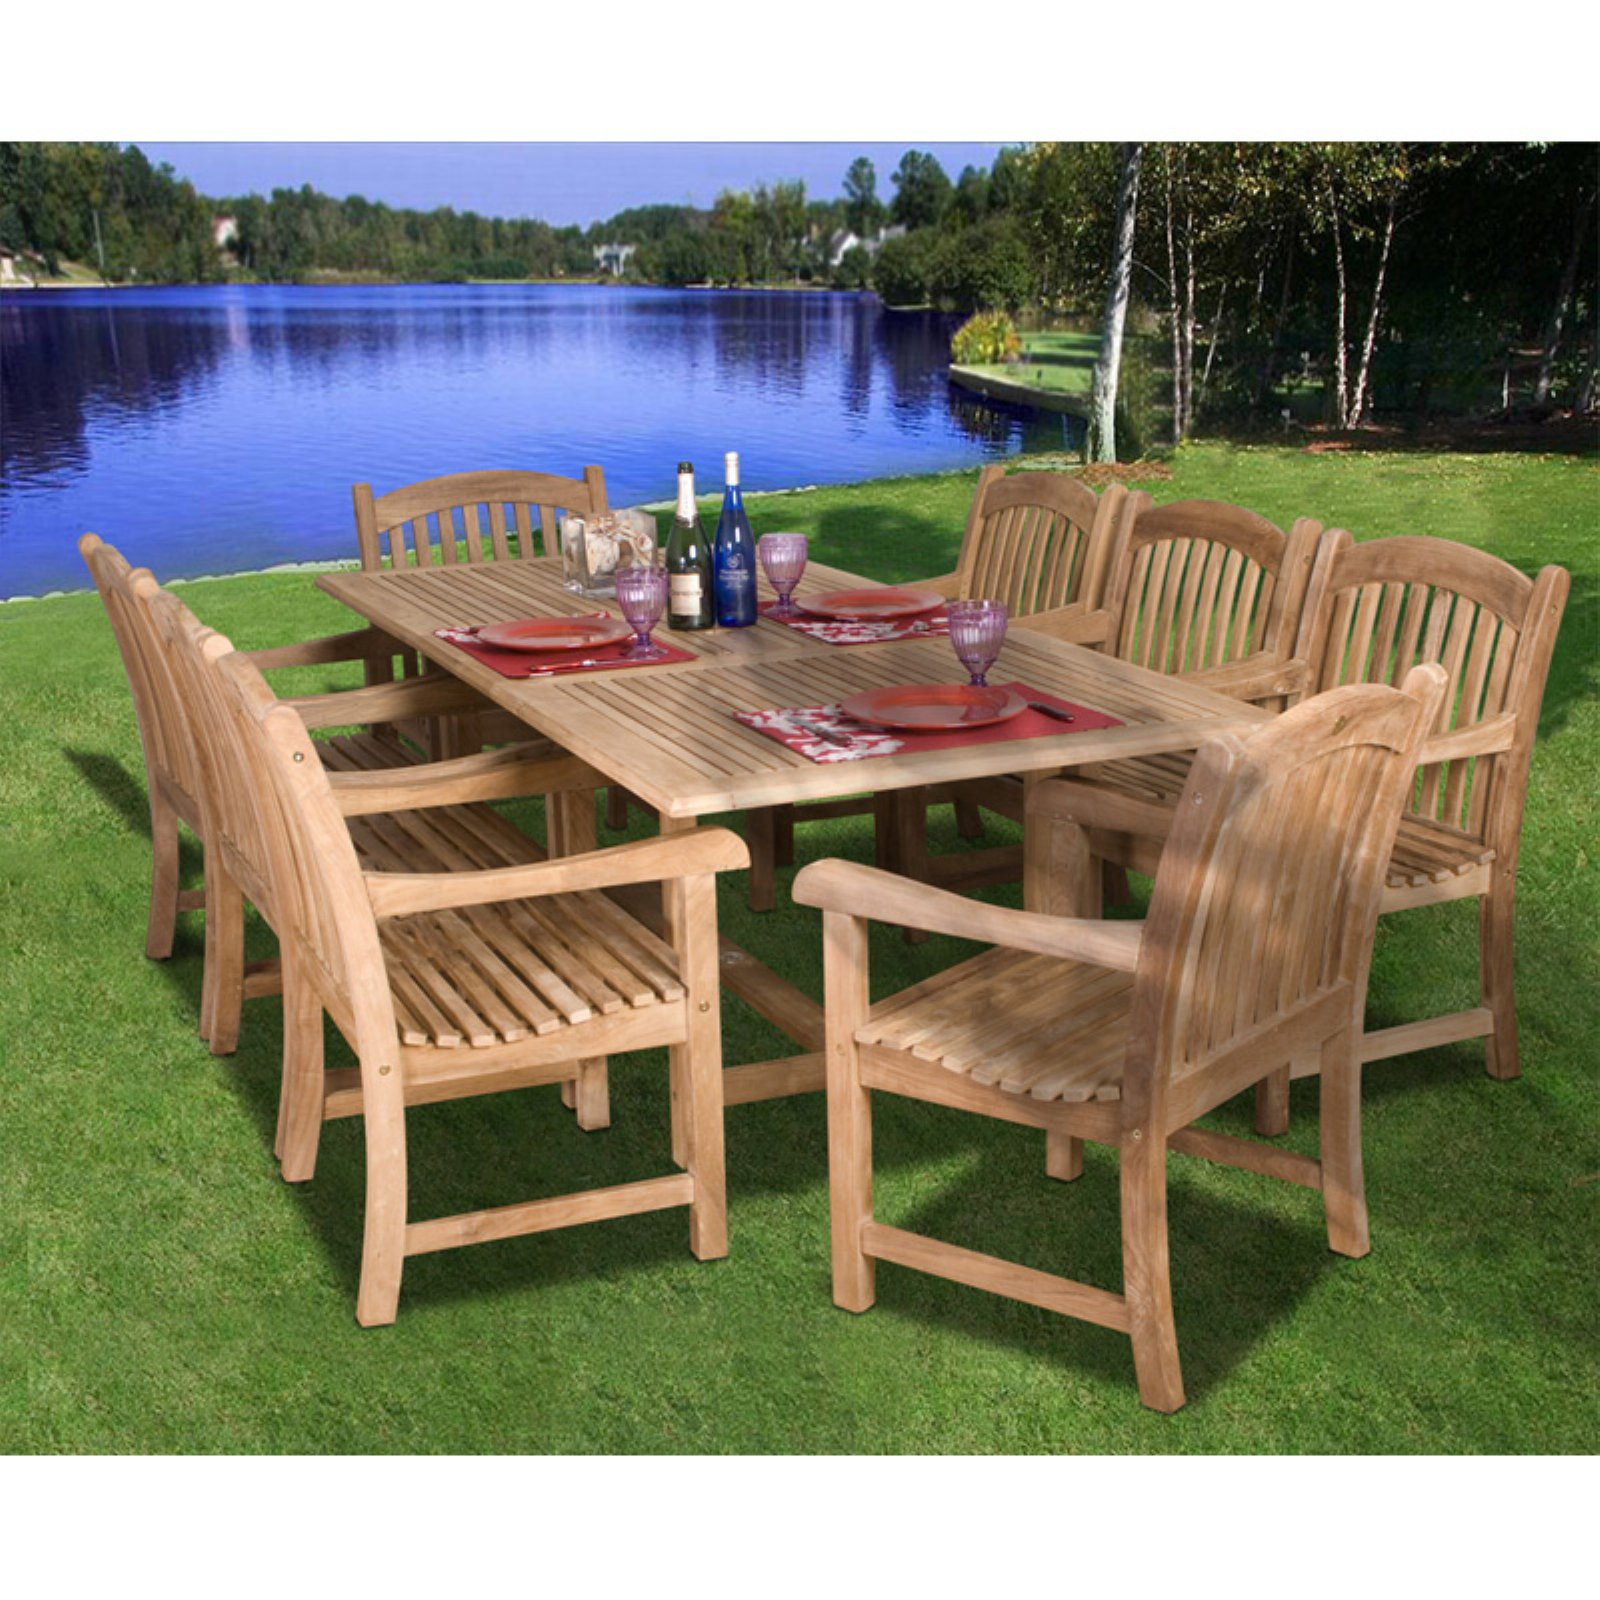 Amazonia Newcastle Teak Dining Room Set Seats 8 by International Home Miami Corp